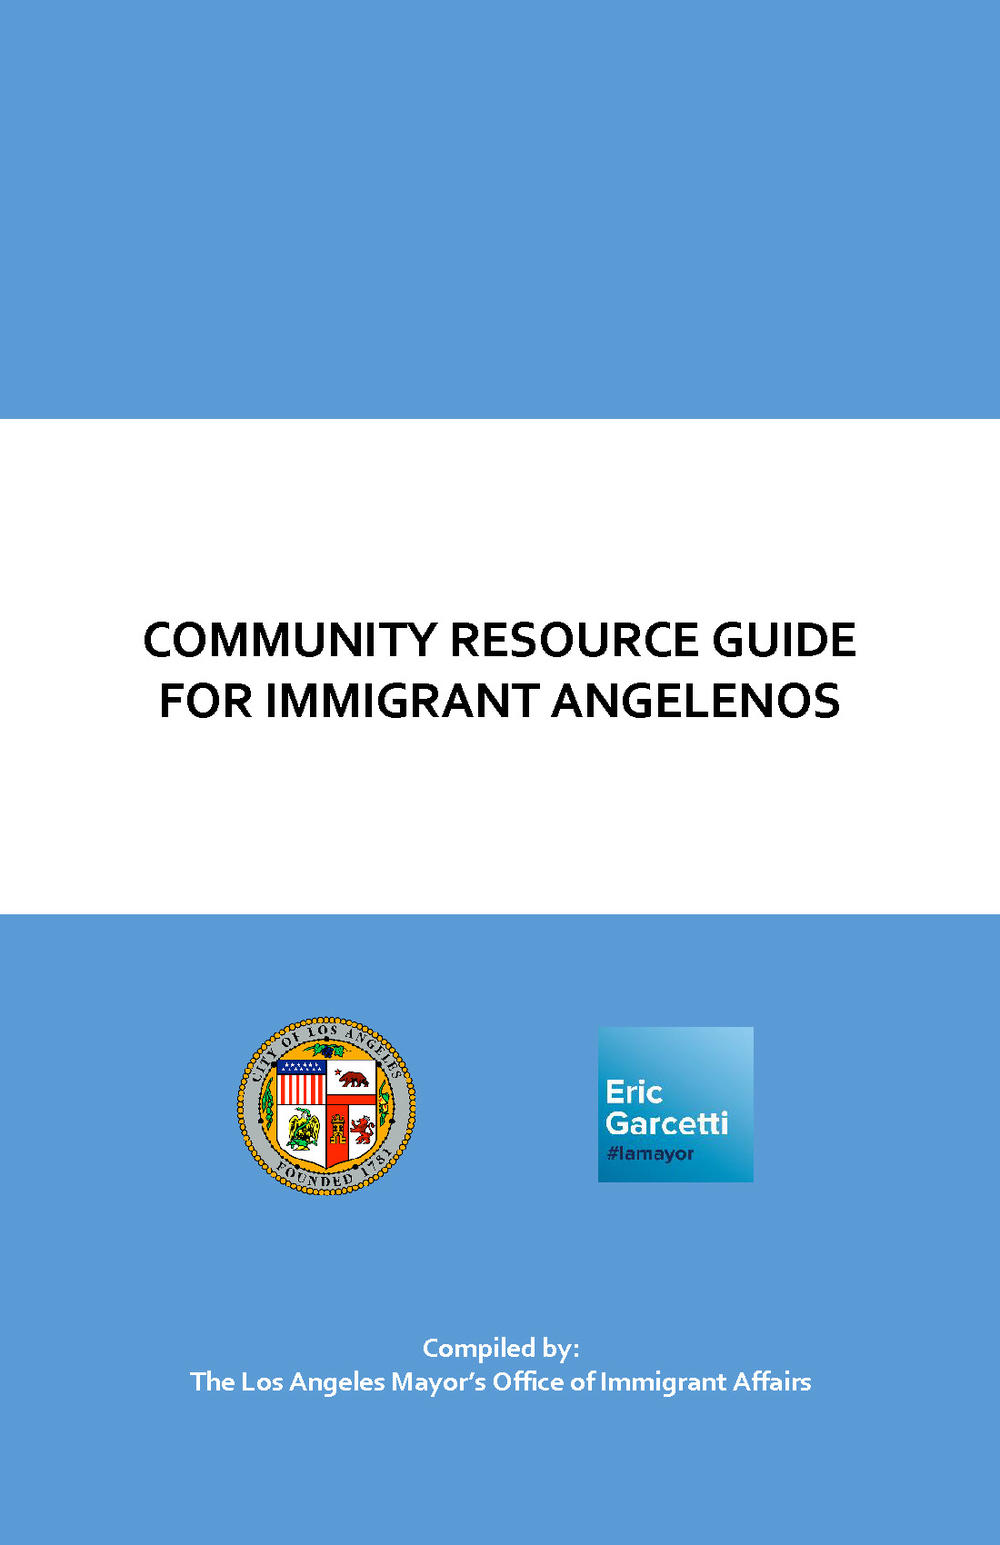 Link to Resource Guide for Immigrants